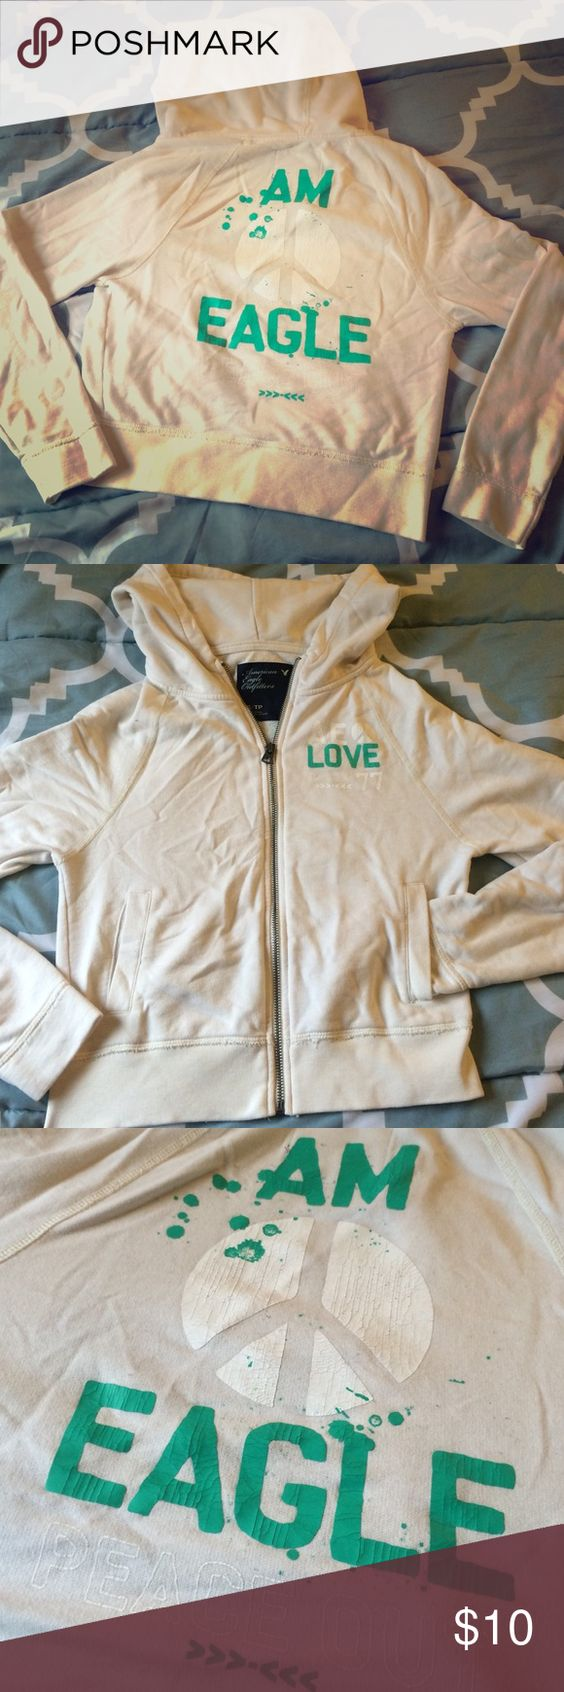 American Eagle zip up Cream colored hoodie American Eagle cream/off-white colored zip-up hoodie. Size XS, previously used. Front pockets. American Eagle Outfitters Tops Sweatshirts & Hoodies